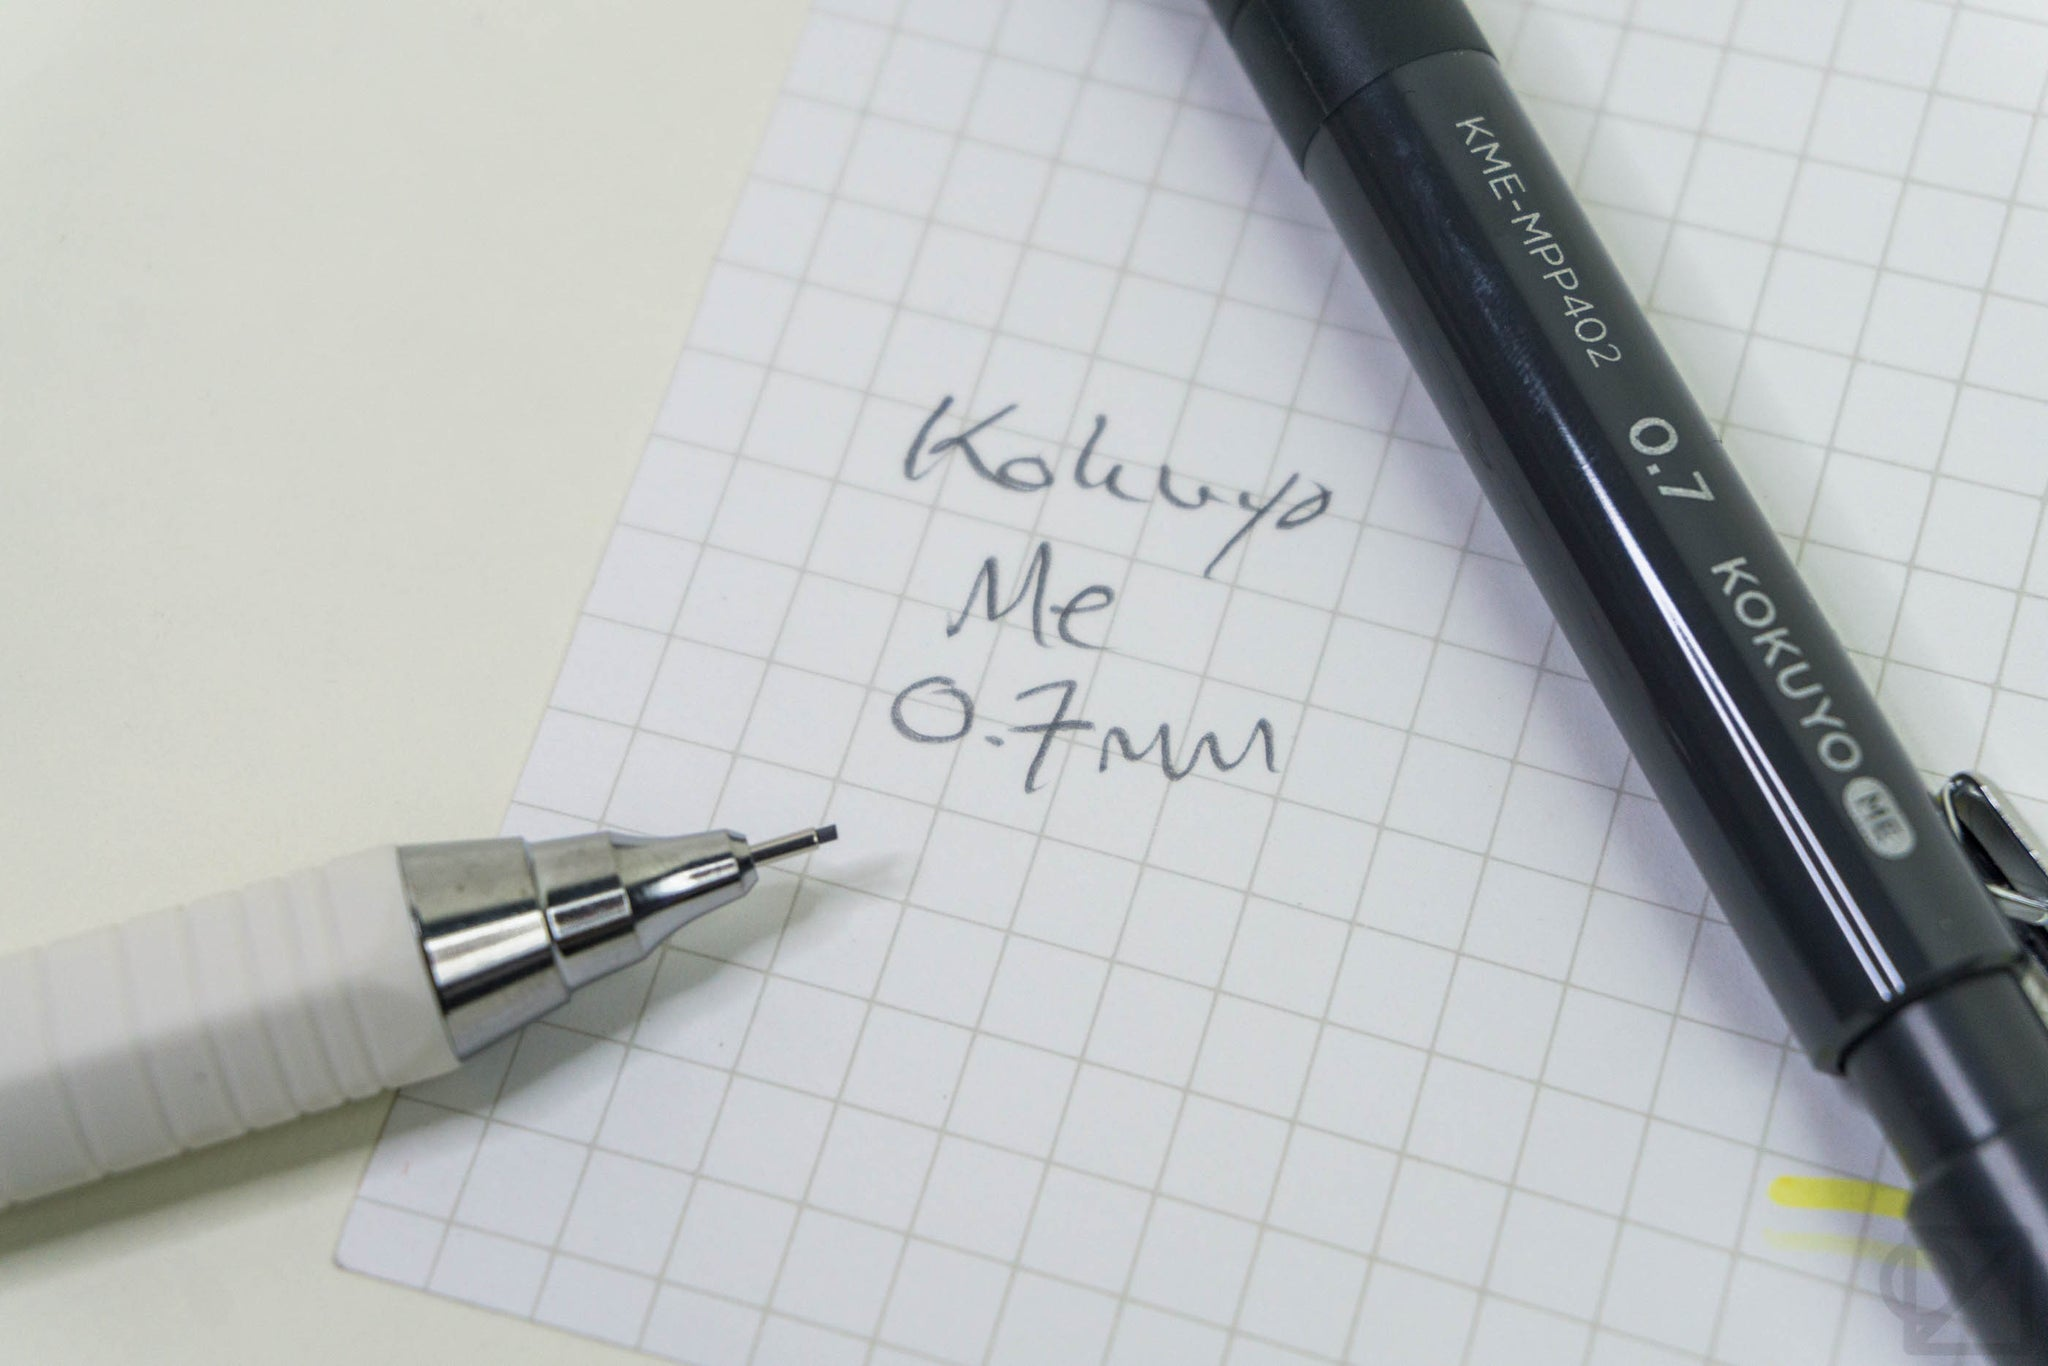 KOKUYO ME 0.7mm Mechanical Pencil